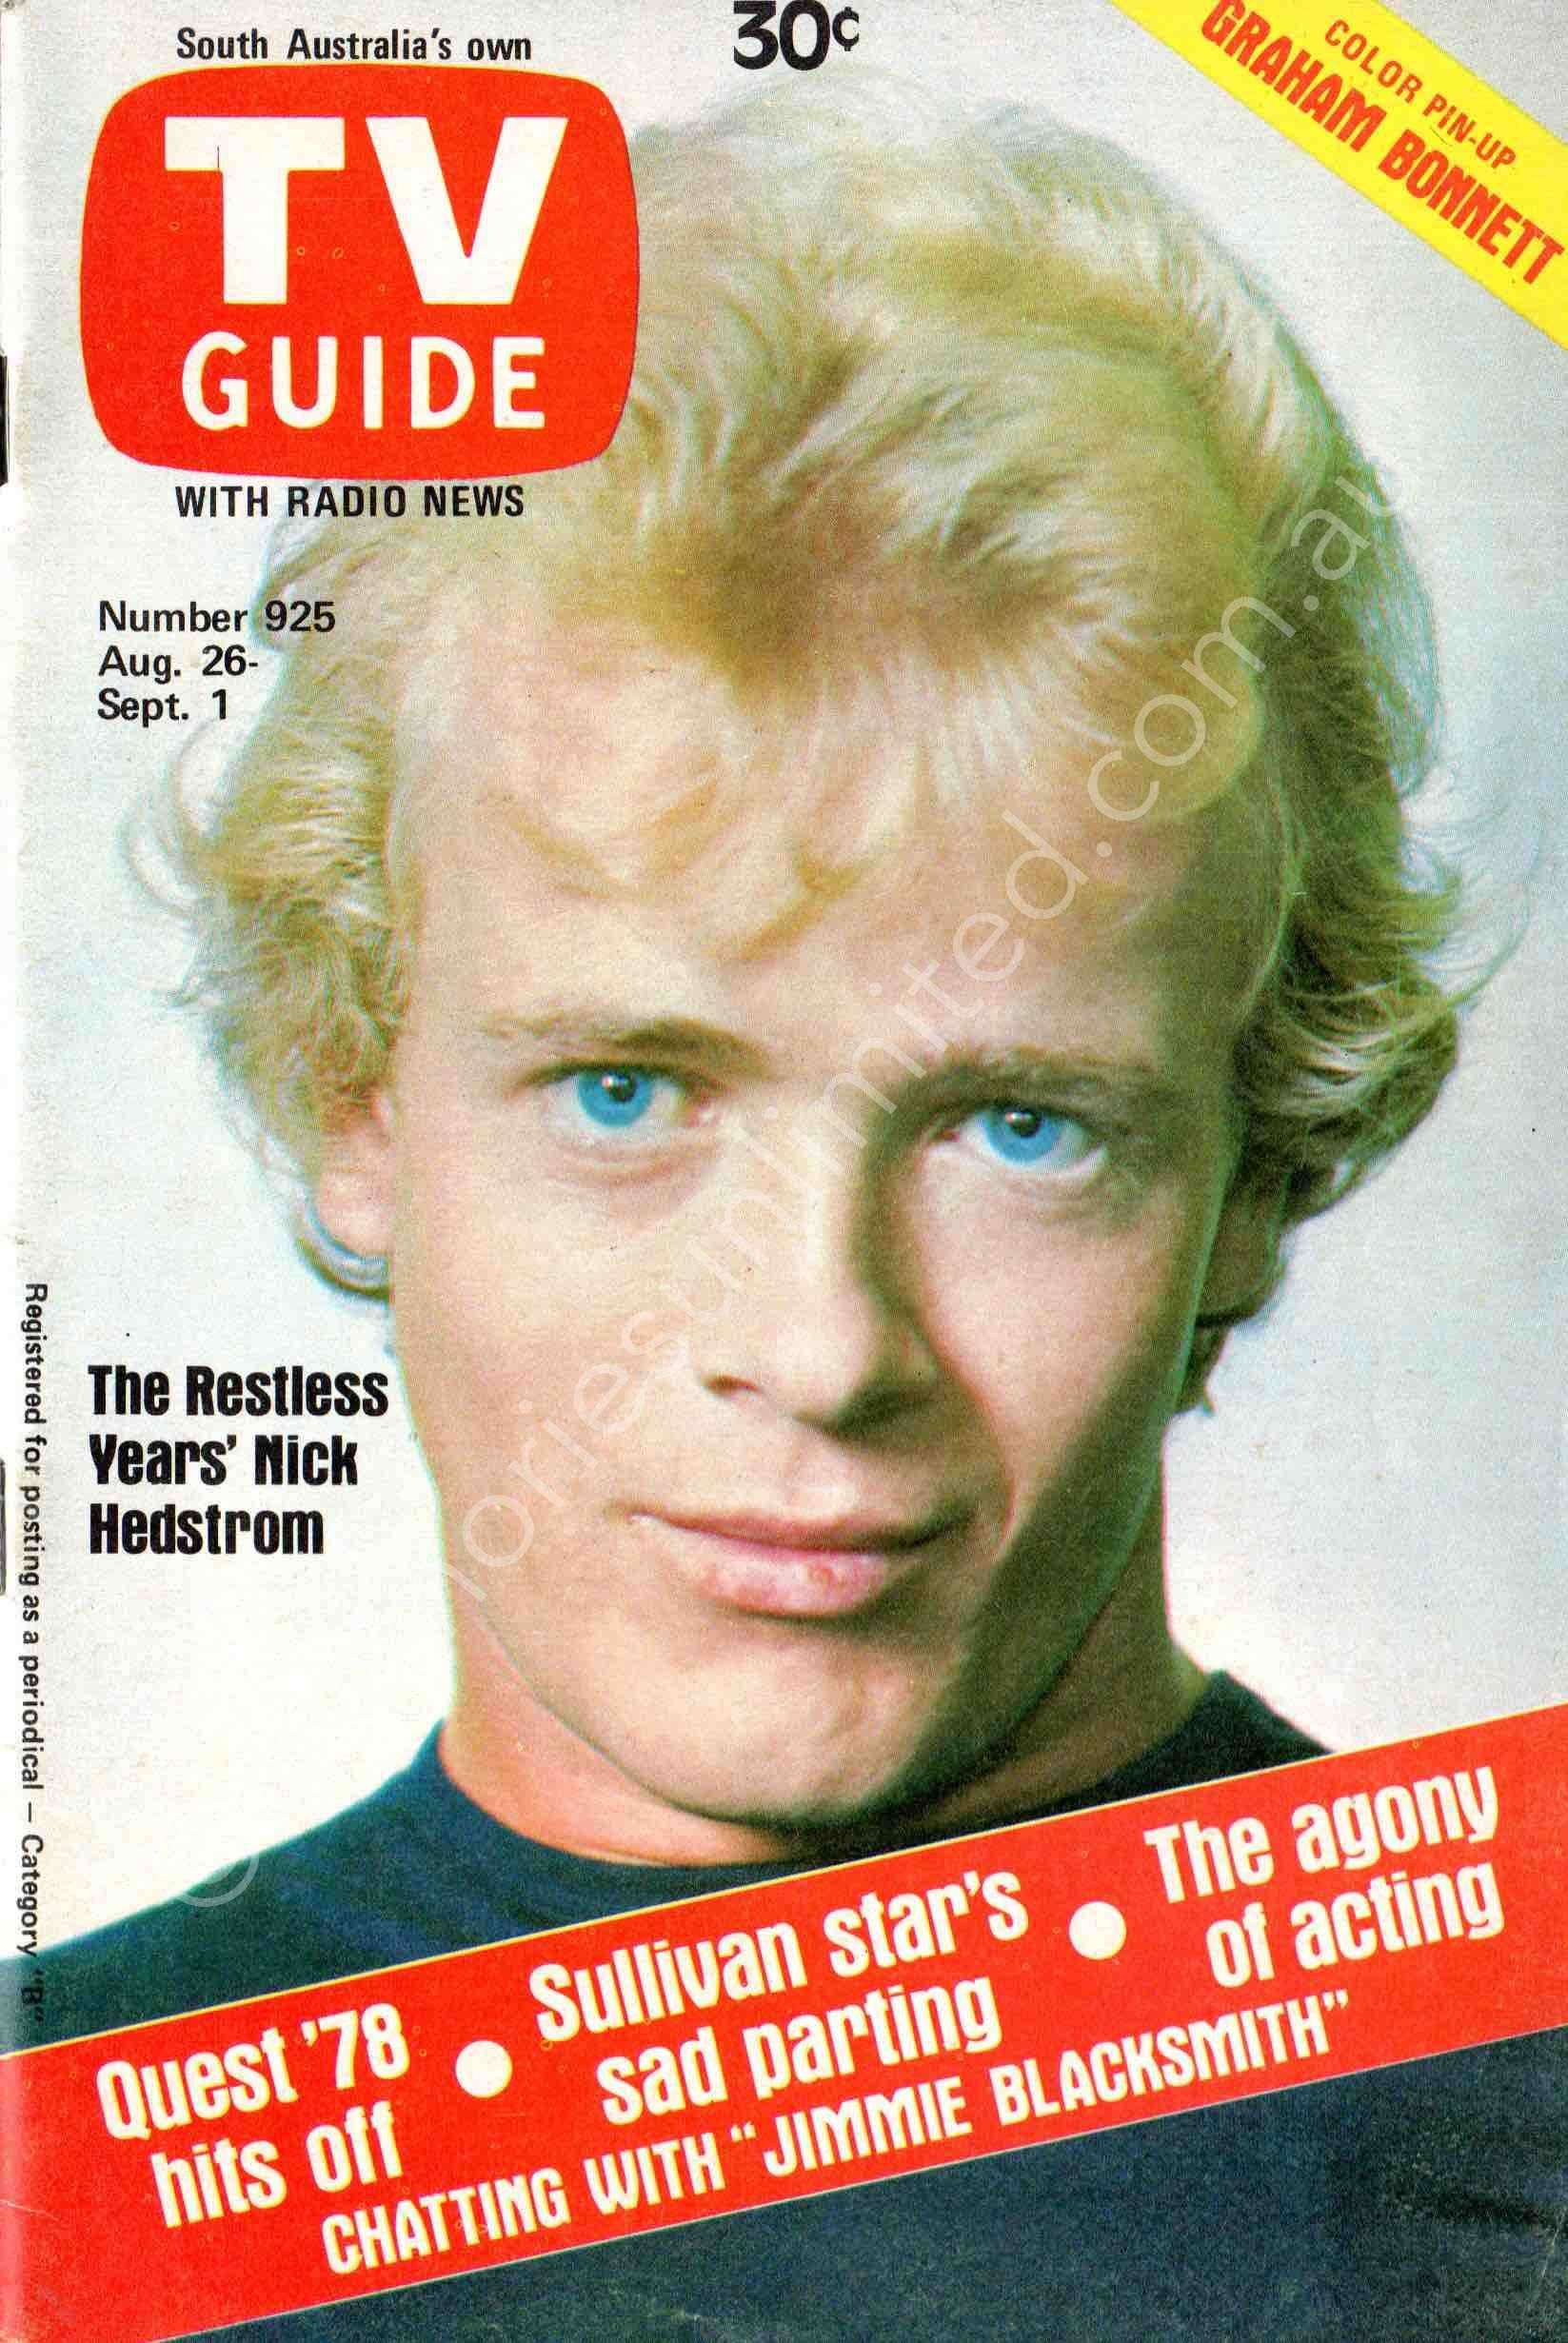 TV Guide 1978 August 26 (South Australia)